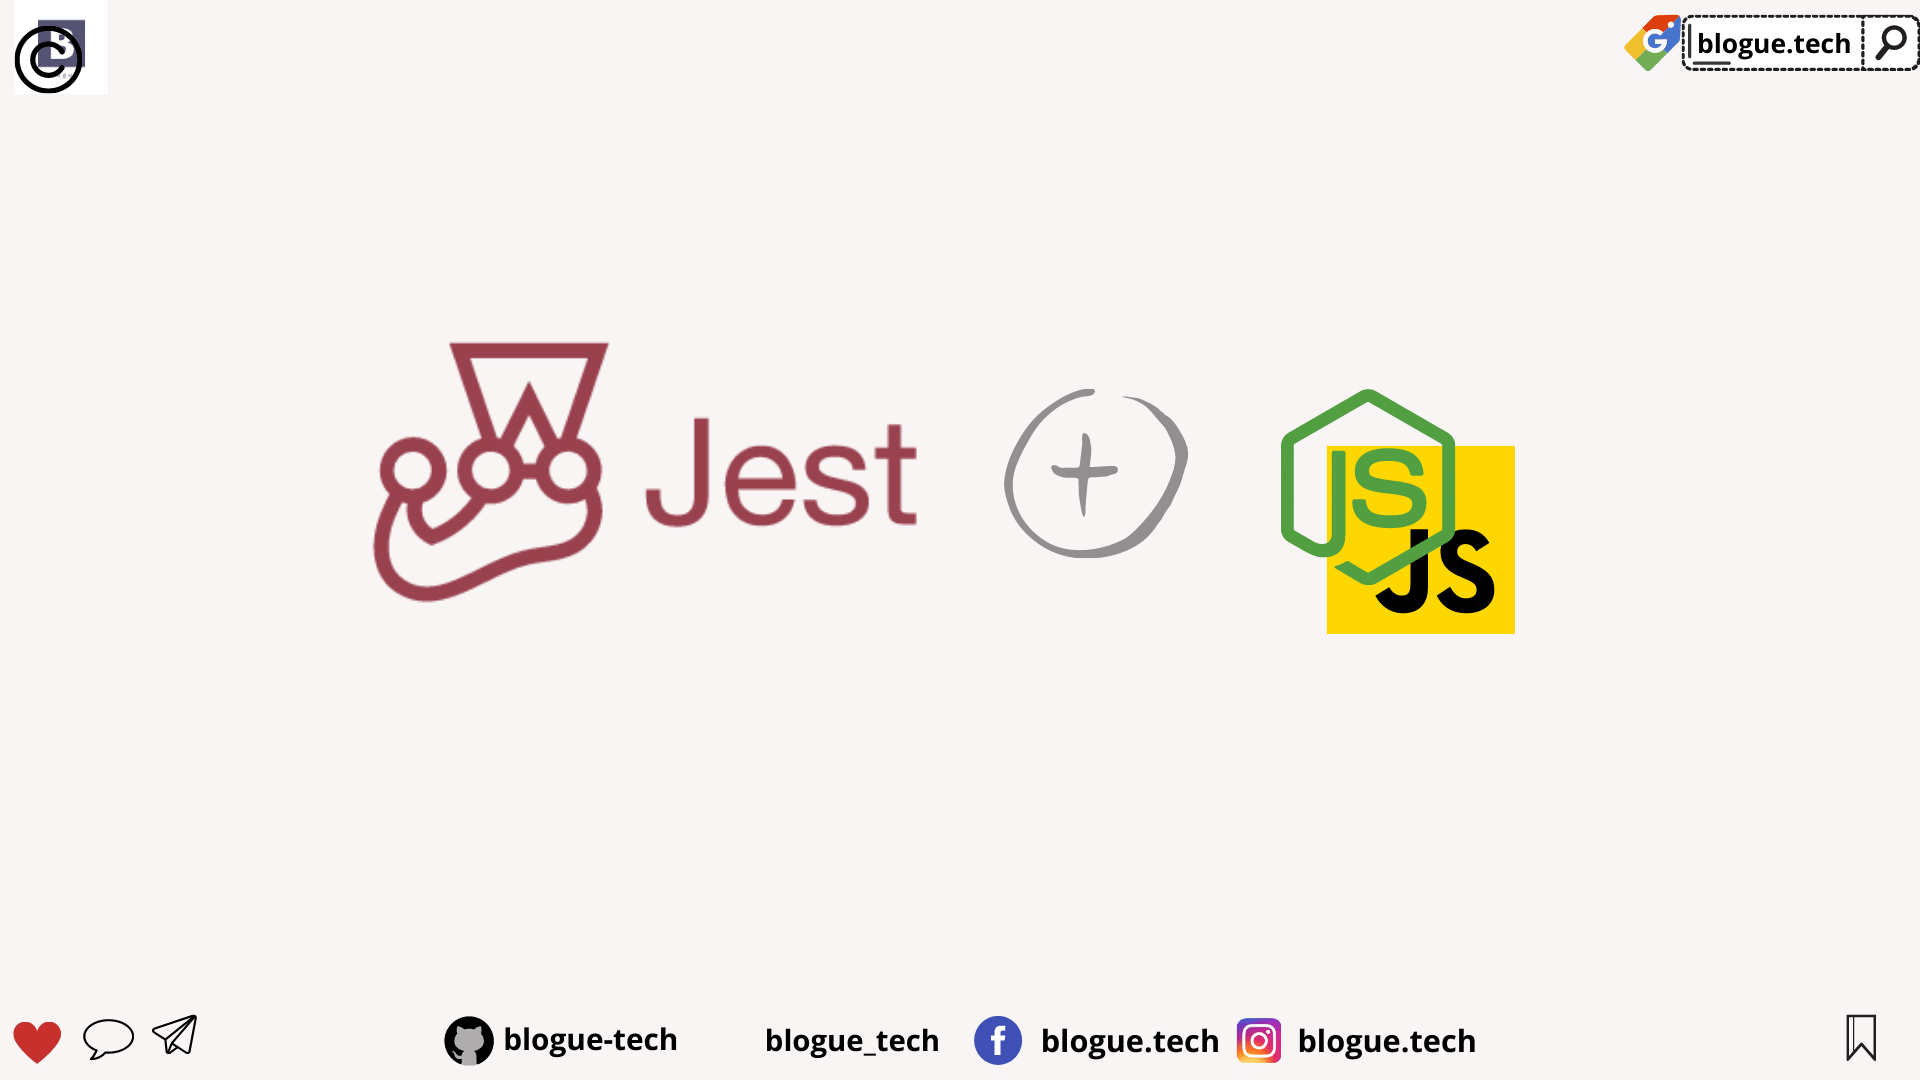 Unit Testing with Jest